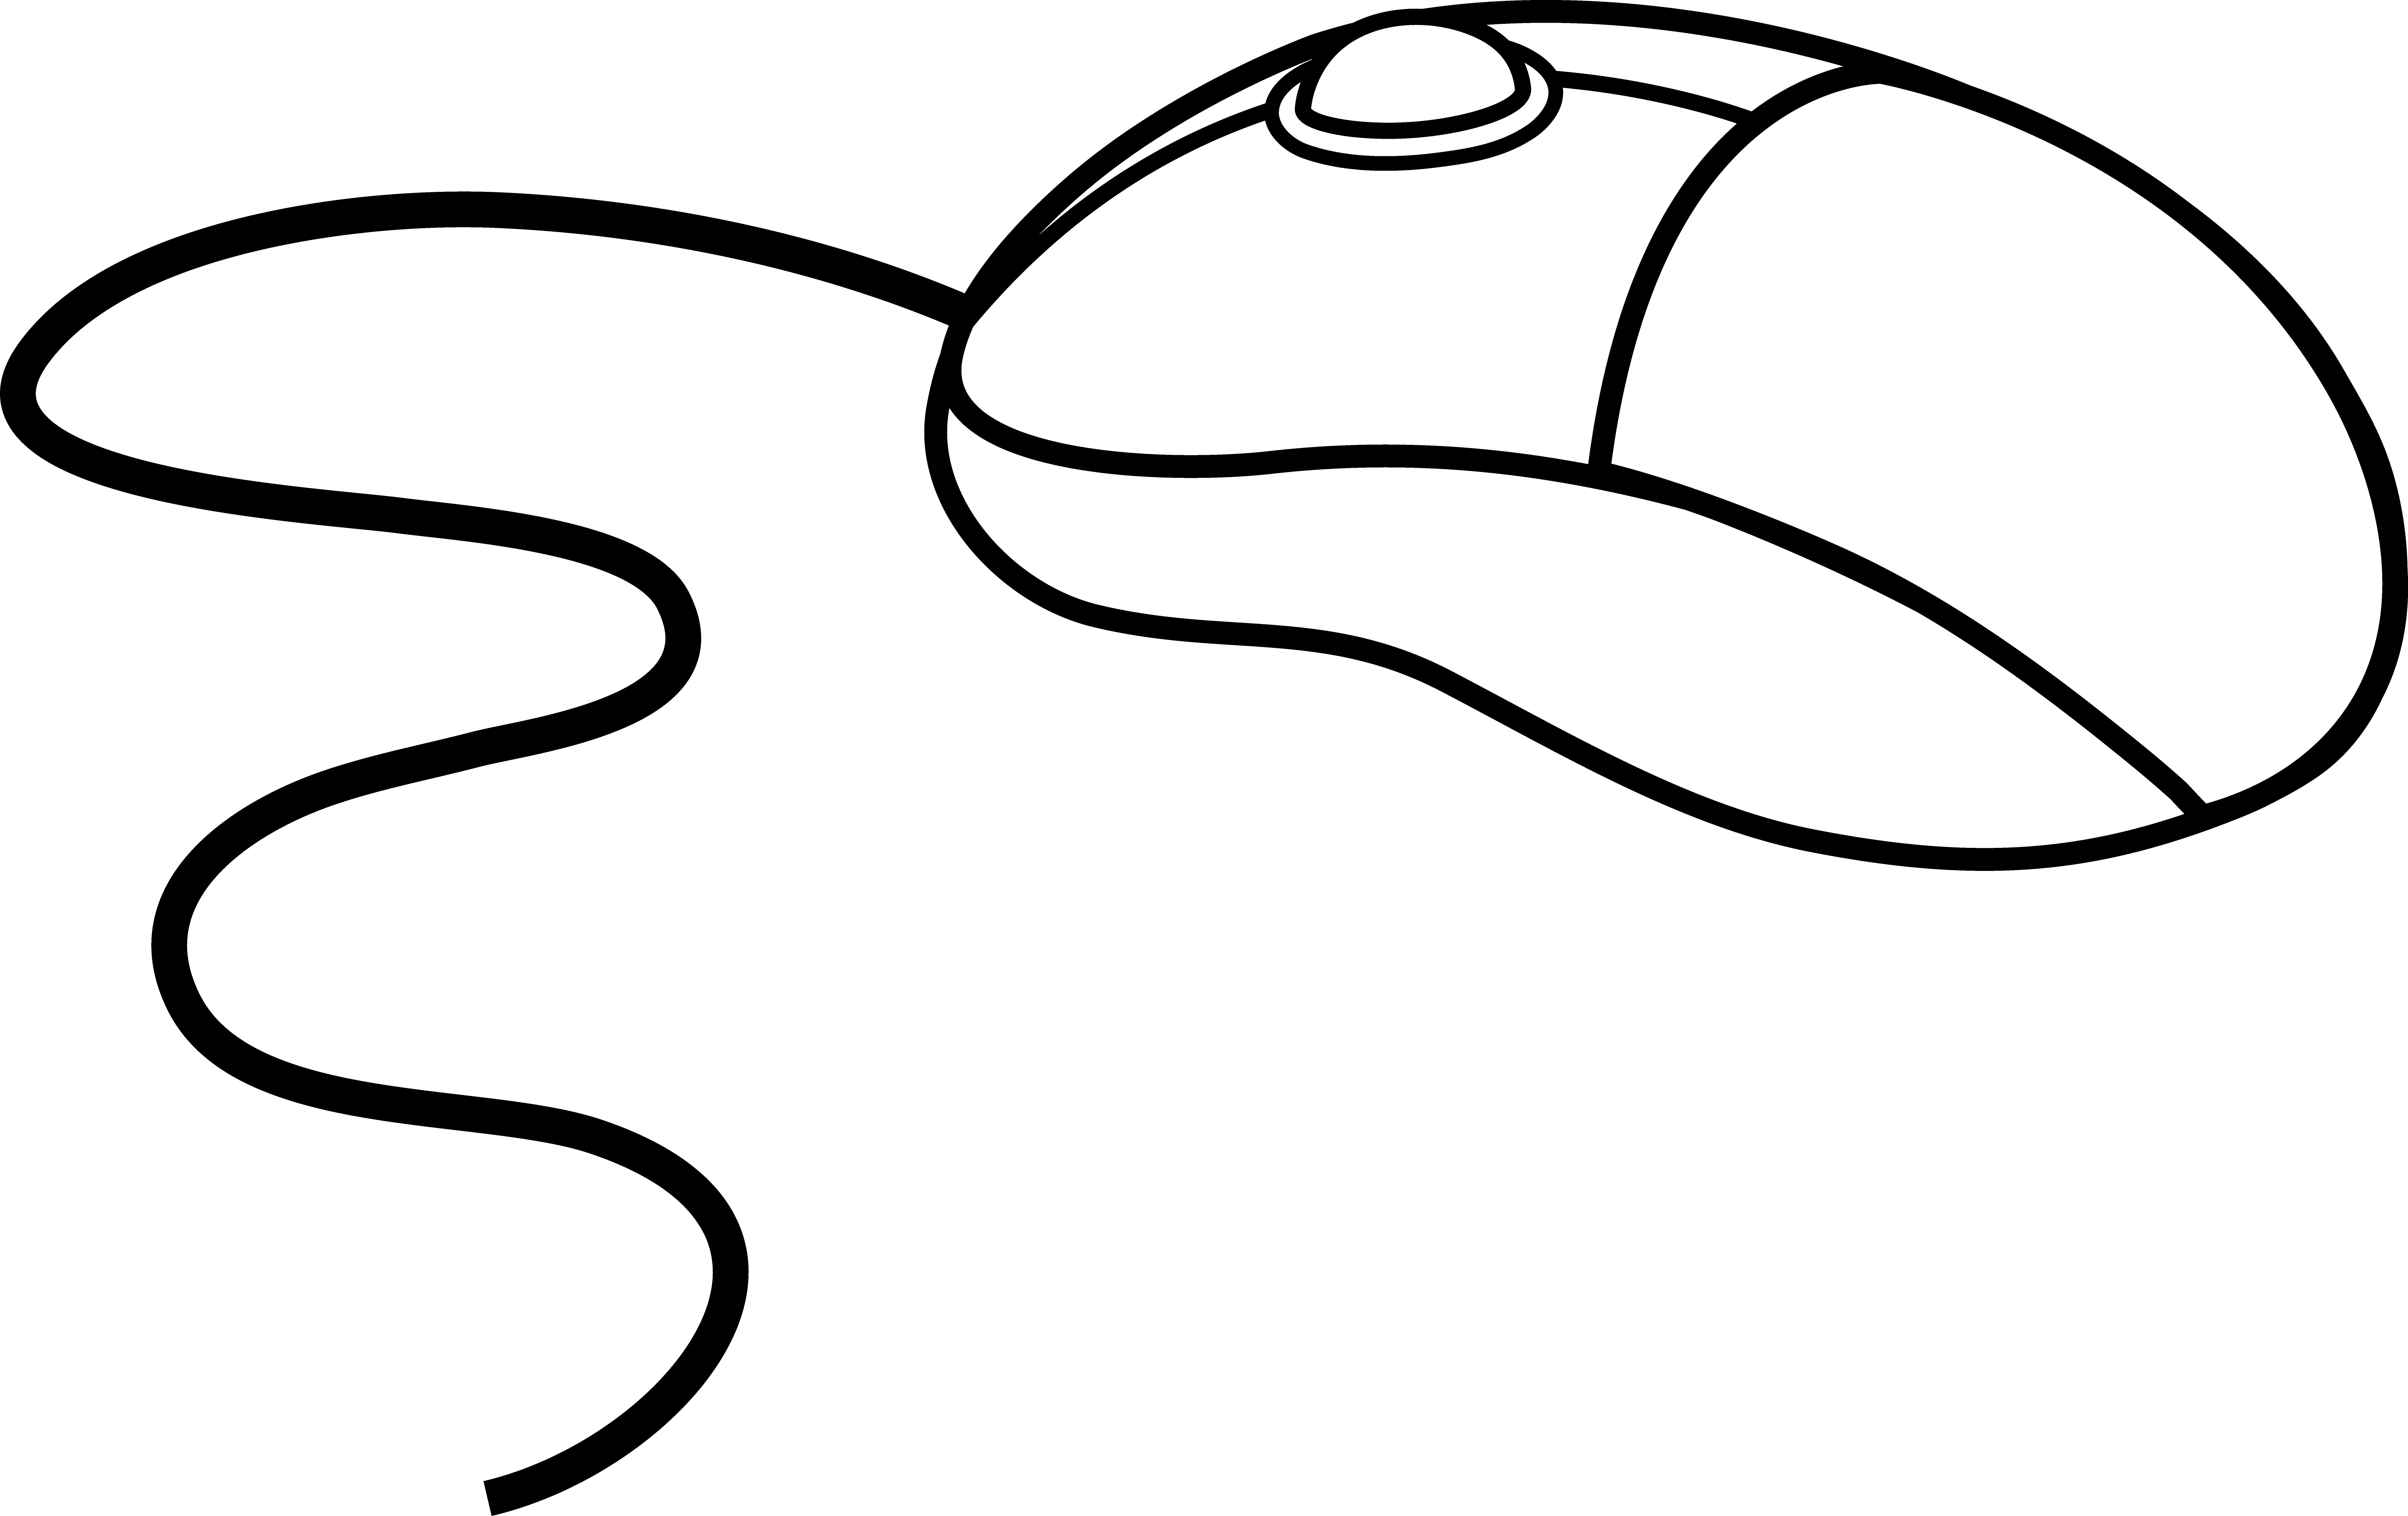 Animated mouse png - photo#14